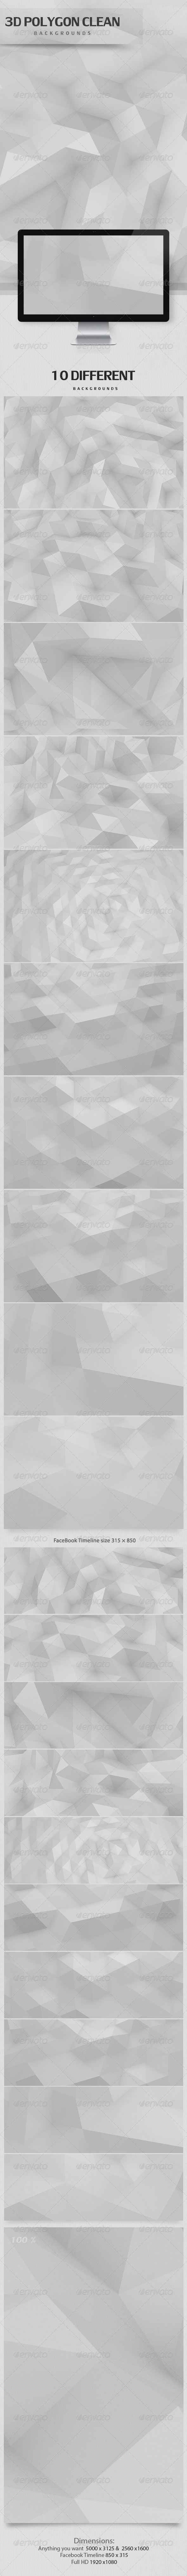 3d-Polygon-Clean-Backgrounds-GraphicRiver-3d-Polygon-Clean-Backgrounds-Dimension-wallpaper-wp3801274